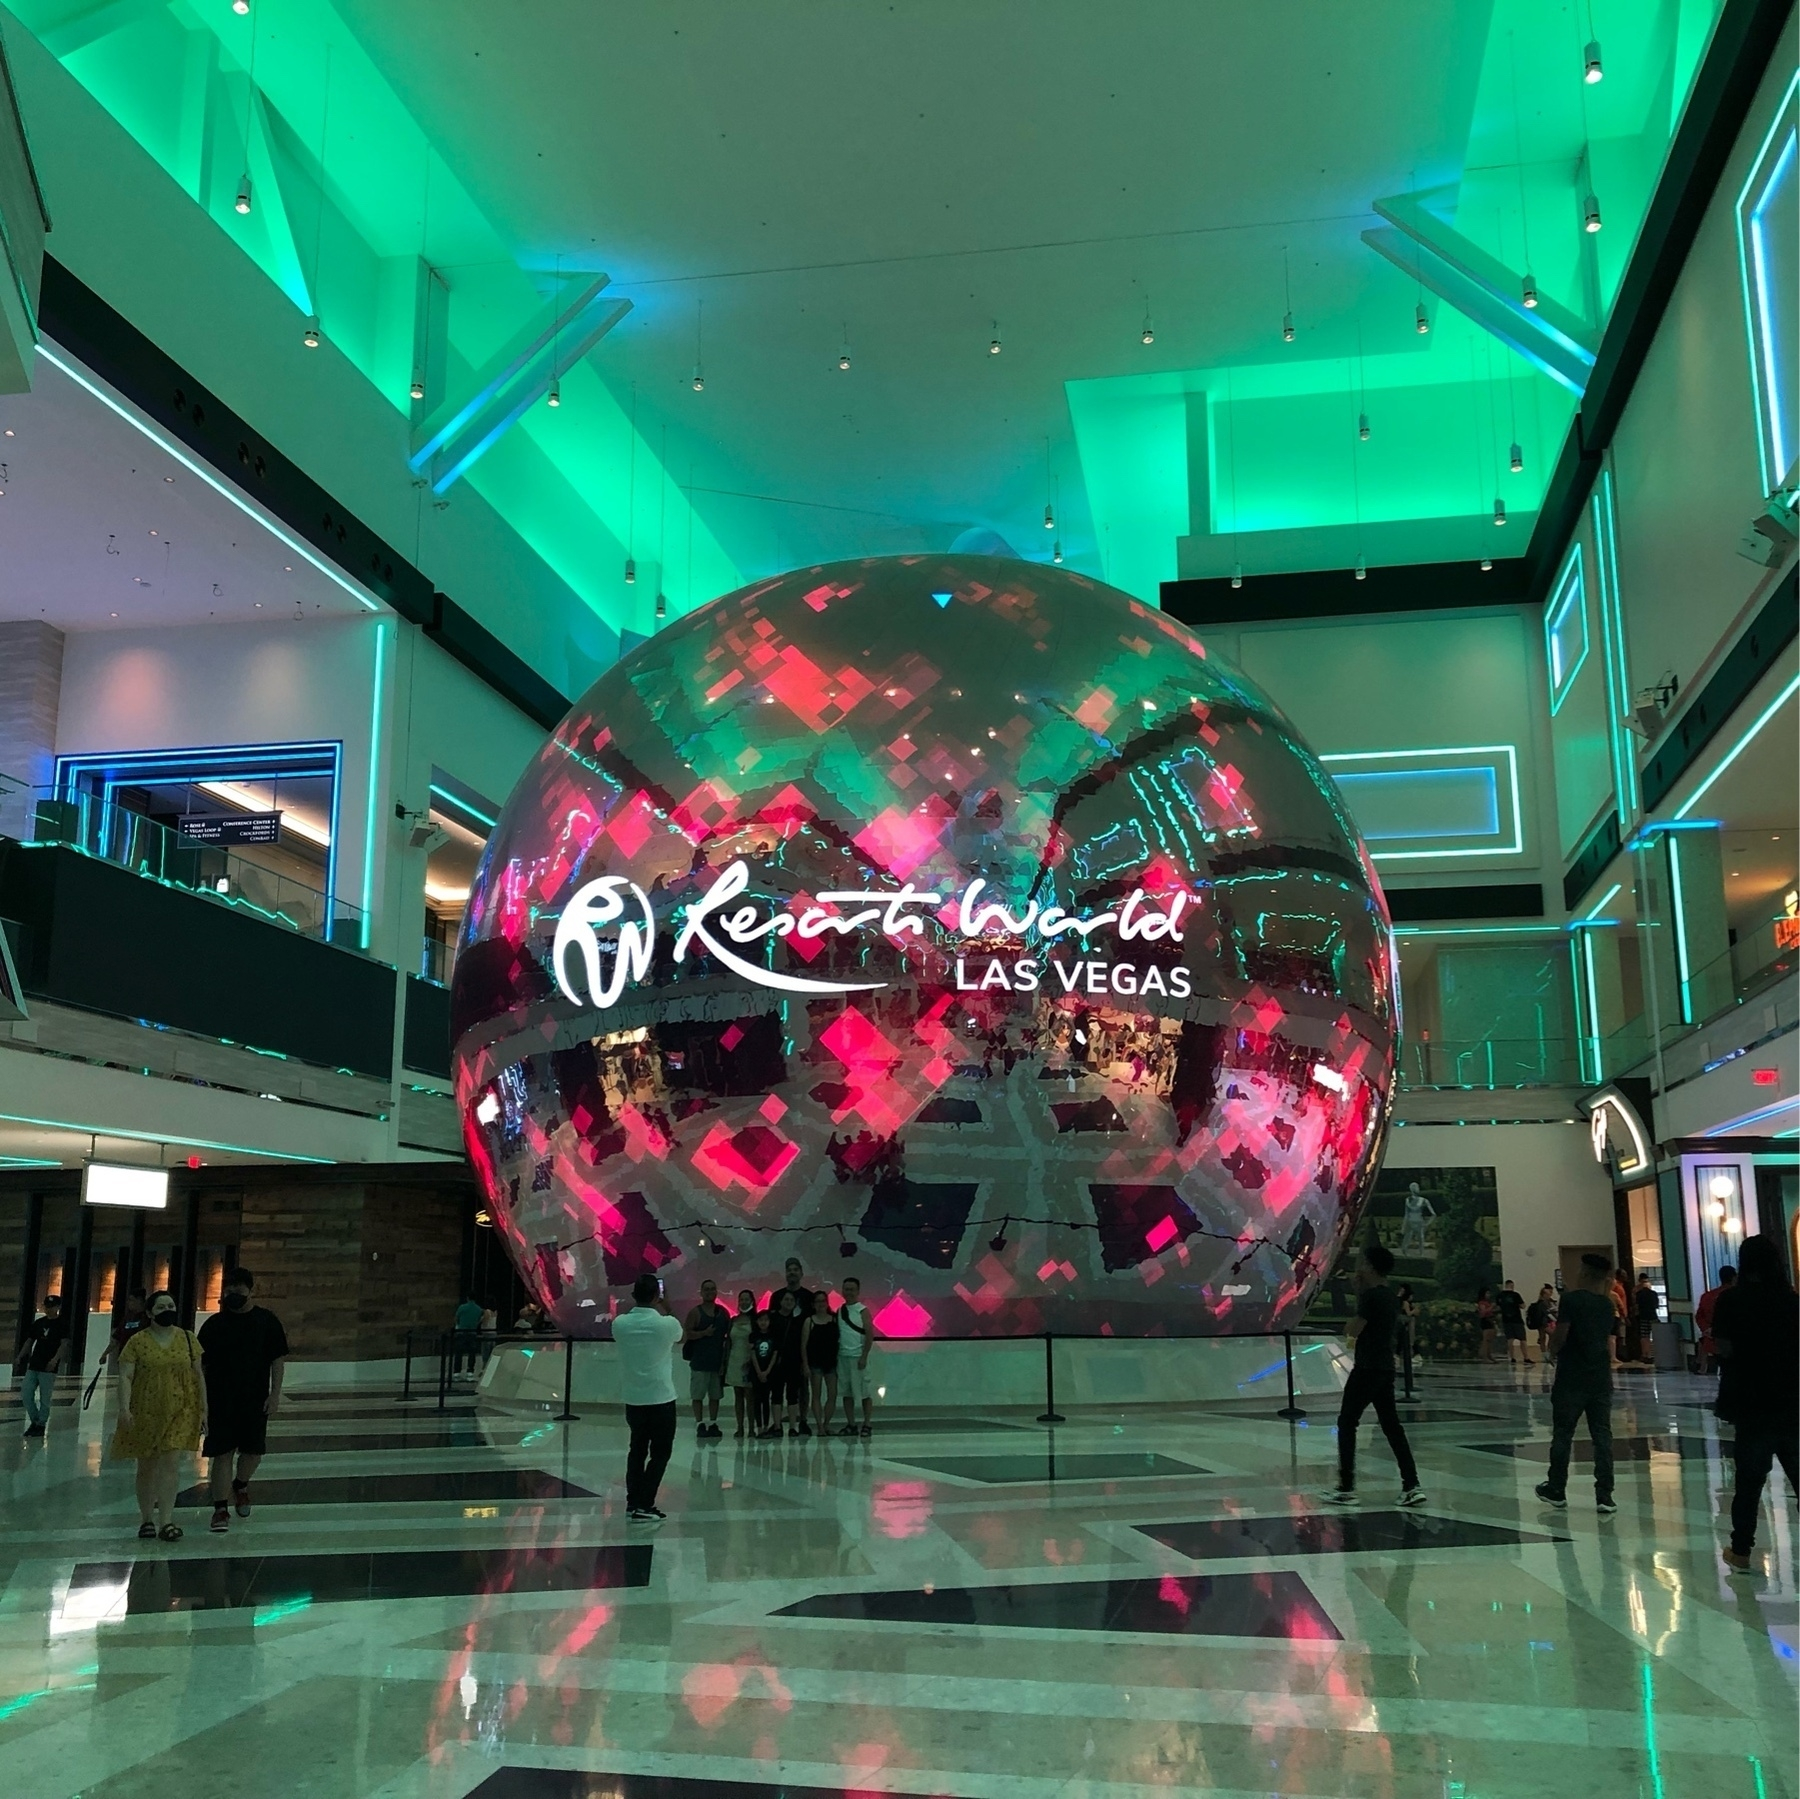 A 40-50 foot reflective sphere in a resort. The room is filled with eerie green light.